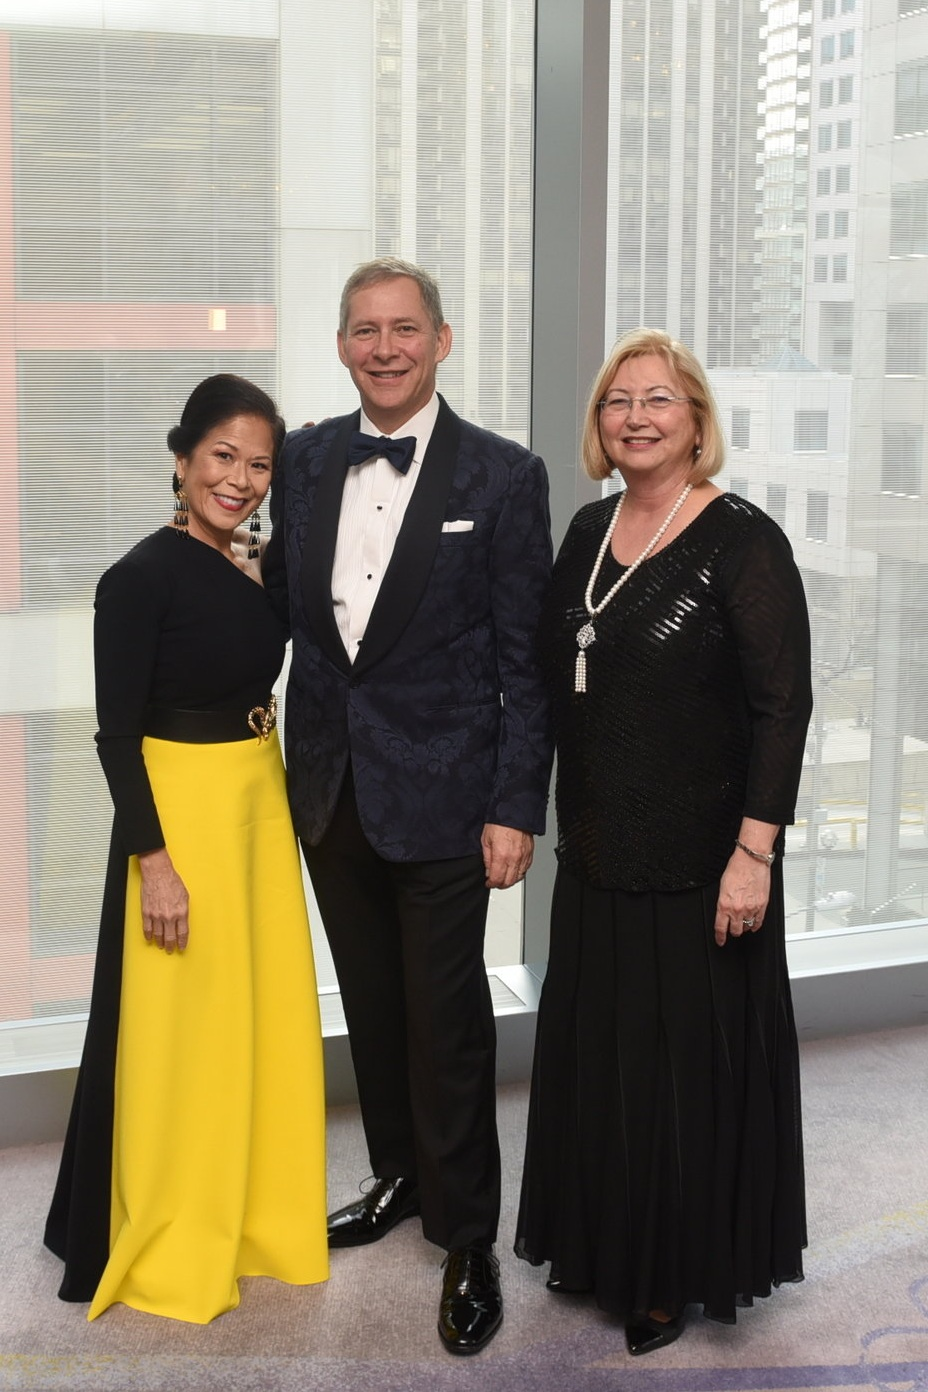 Co-patron Donette Chin-Loy Chang (l), honourary co-chair Bruce Bowen & committee member Lucy La Grassa